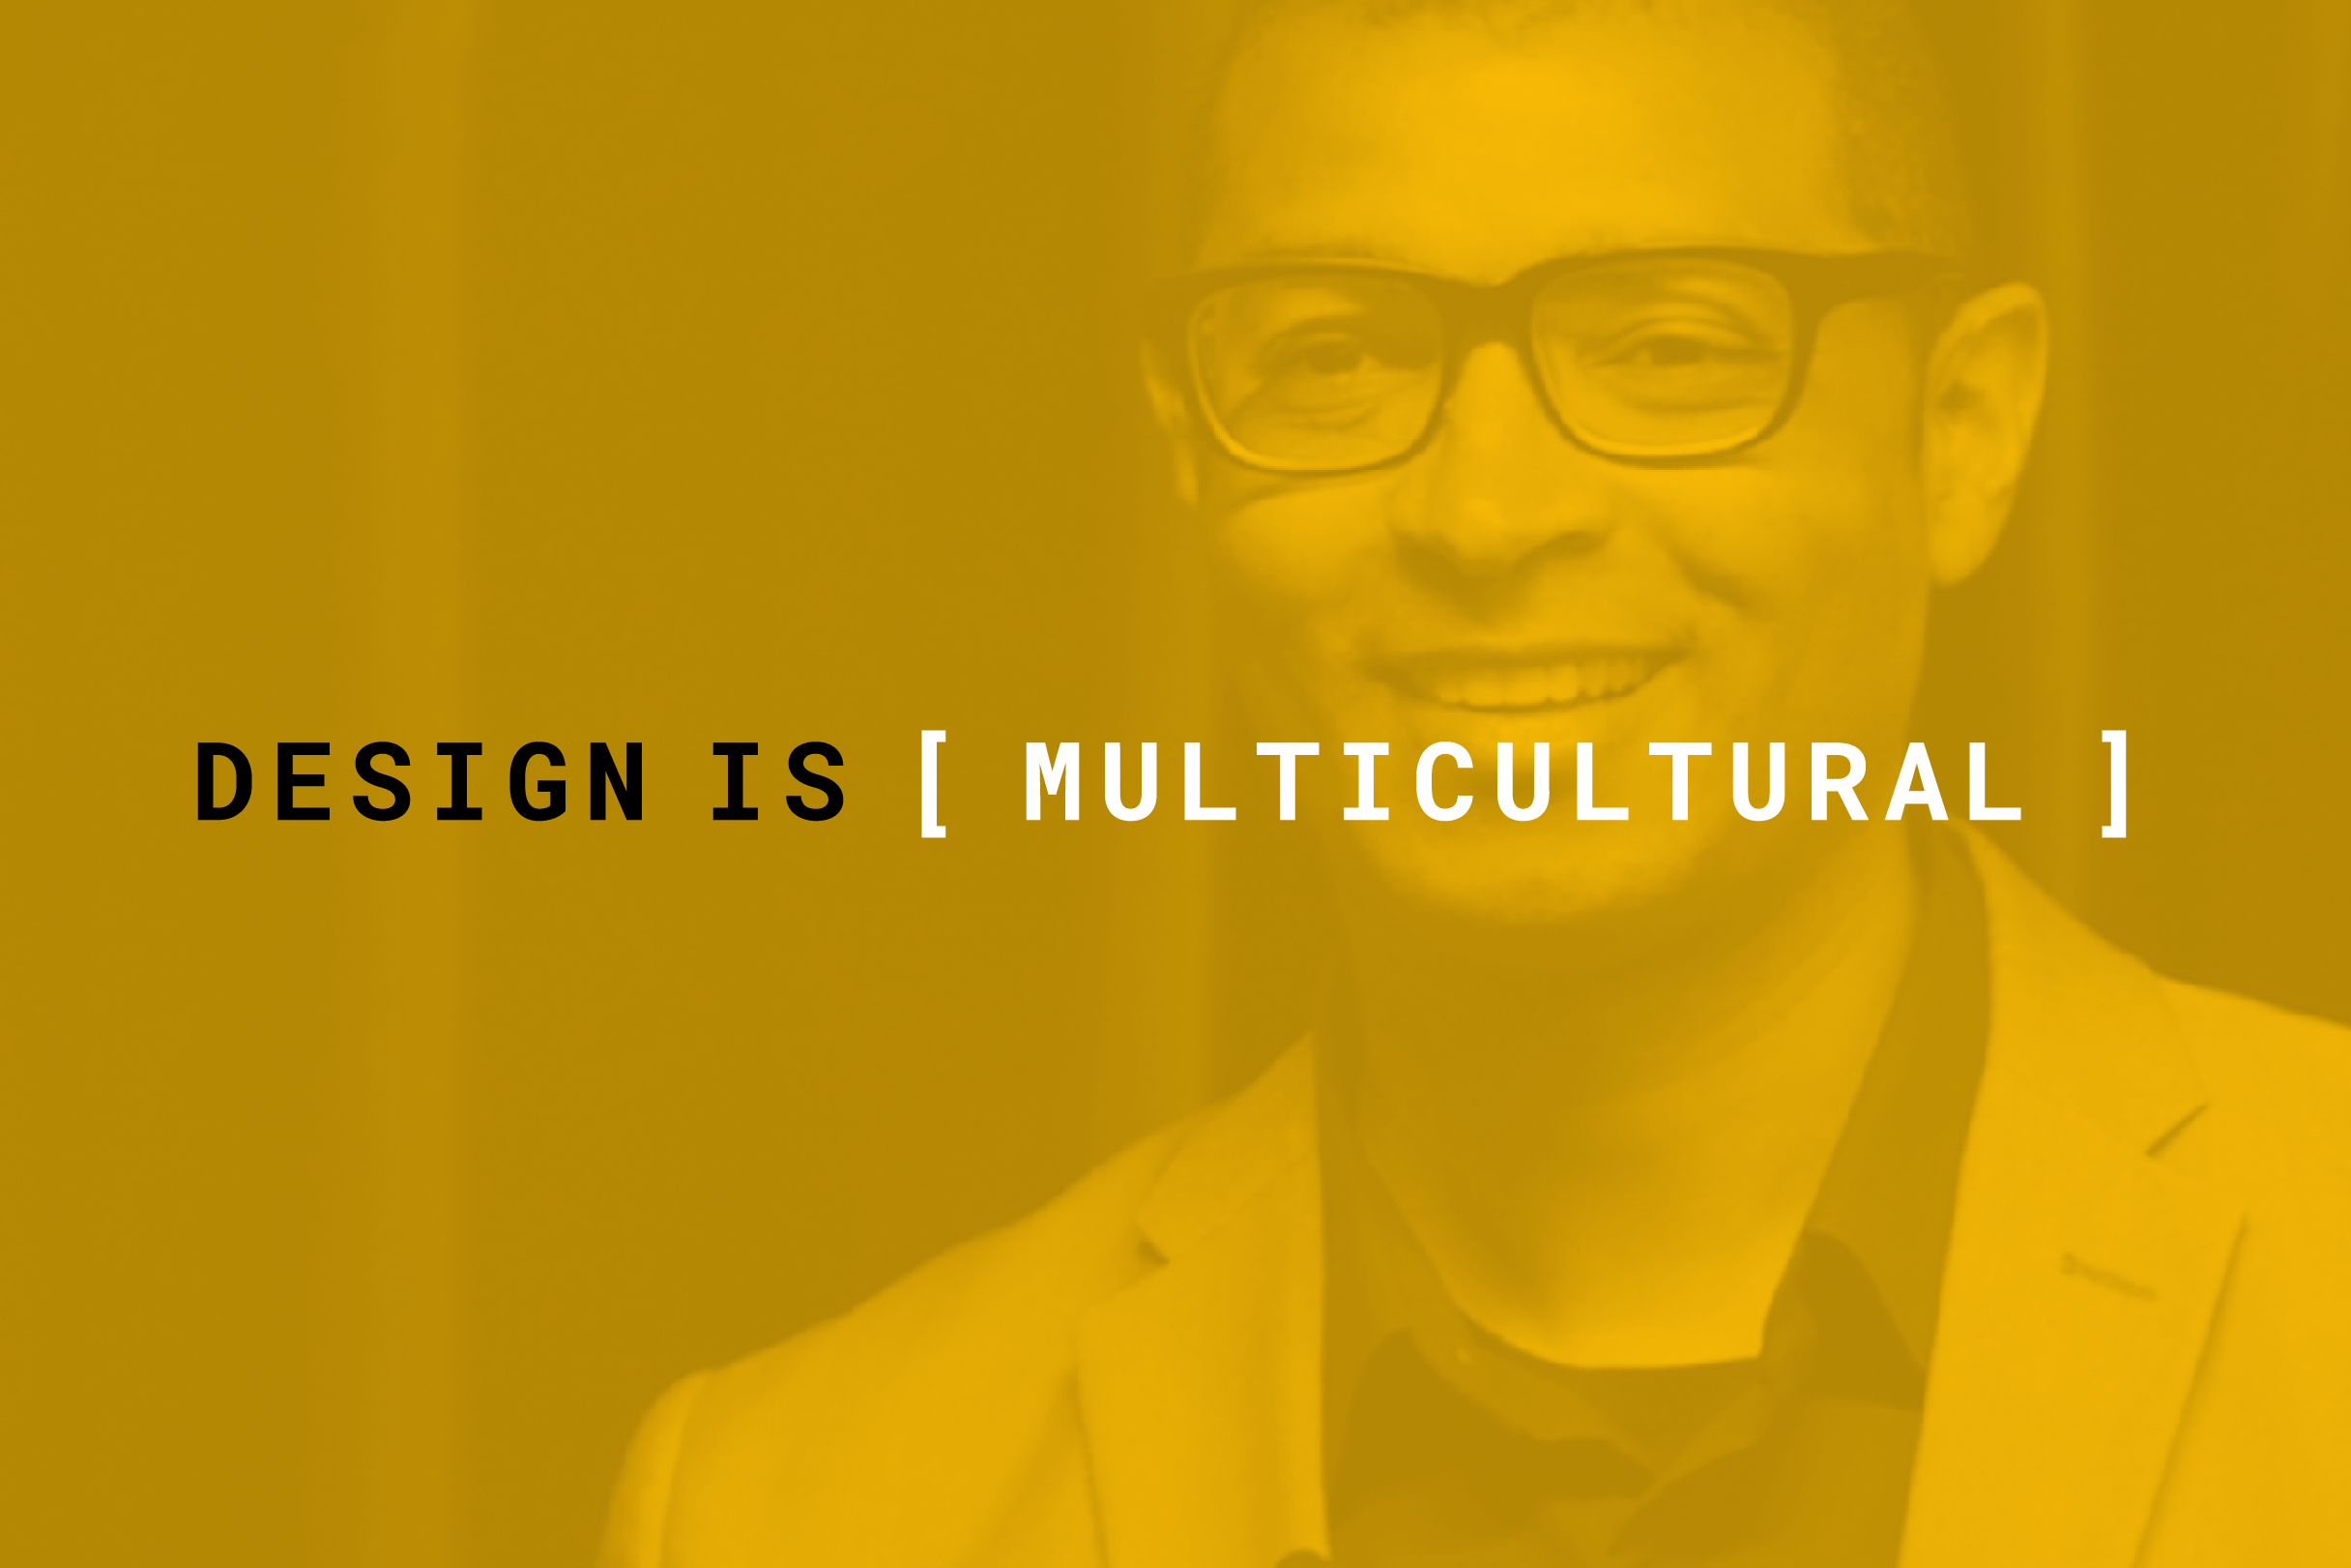 design_is_multicultural_3x2